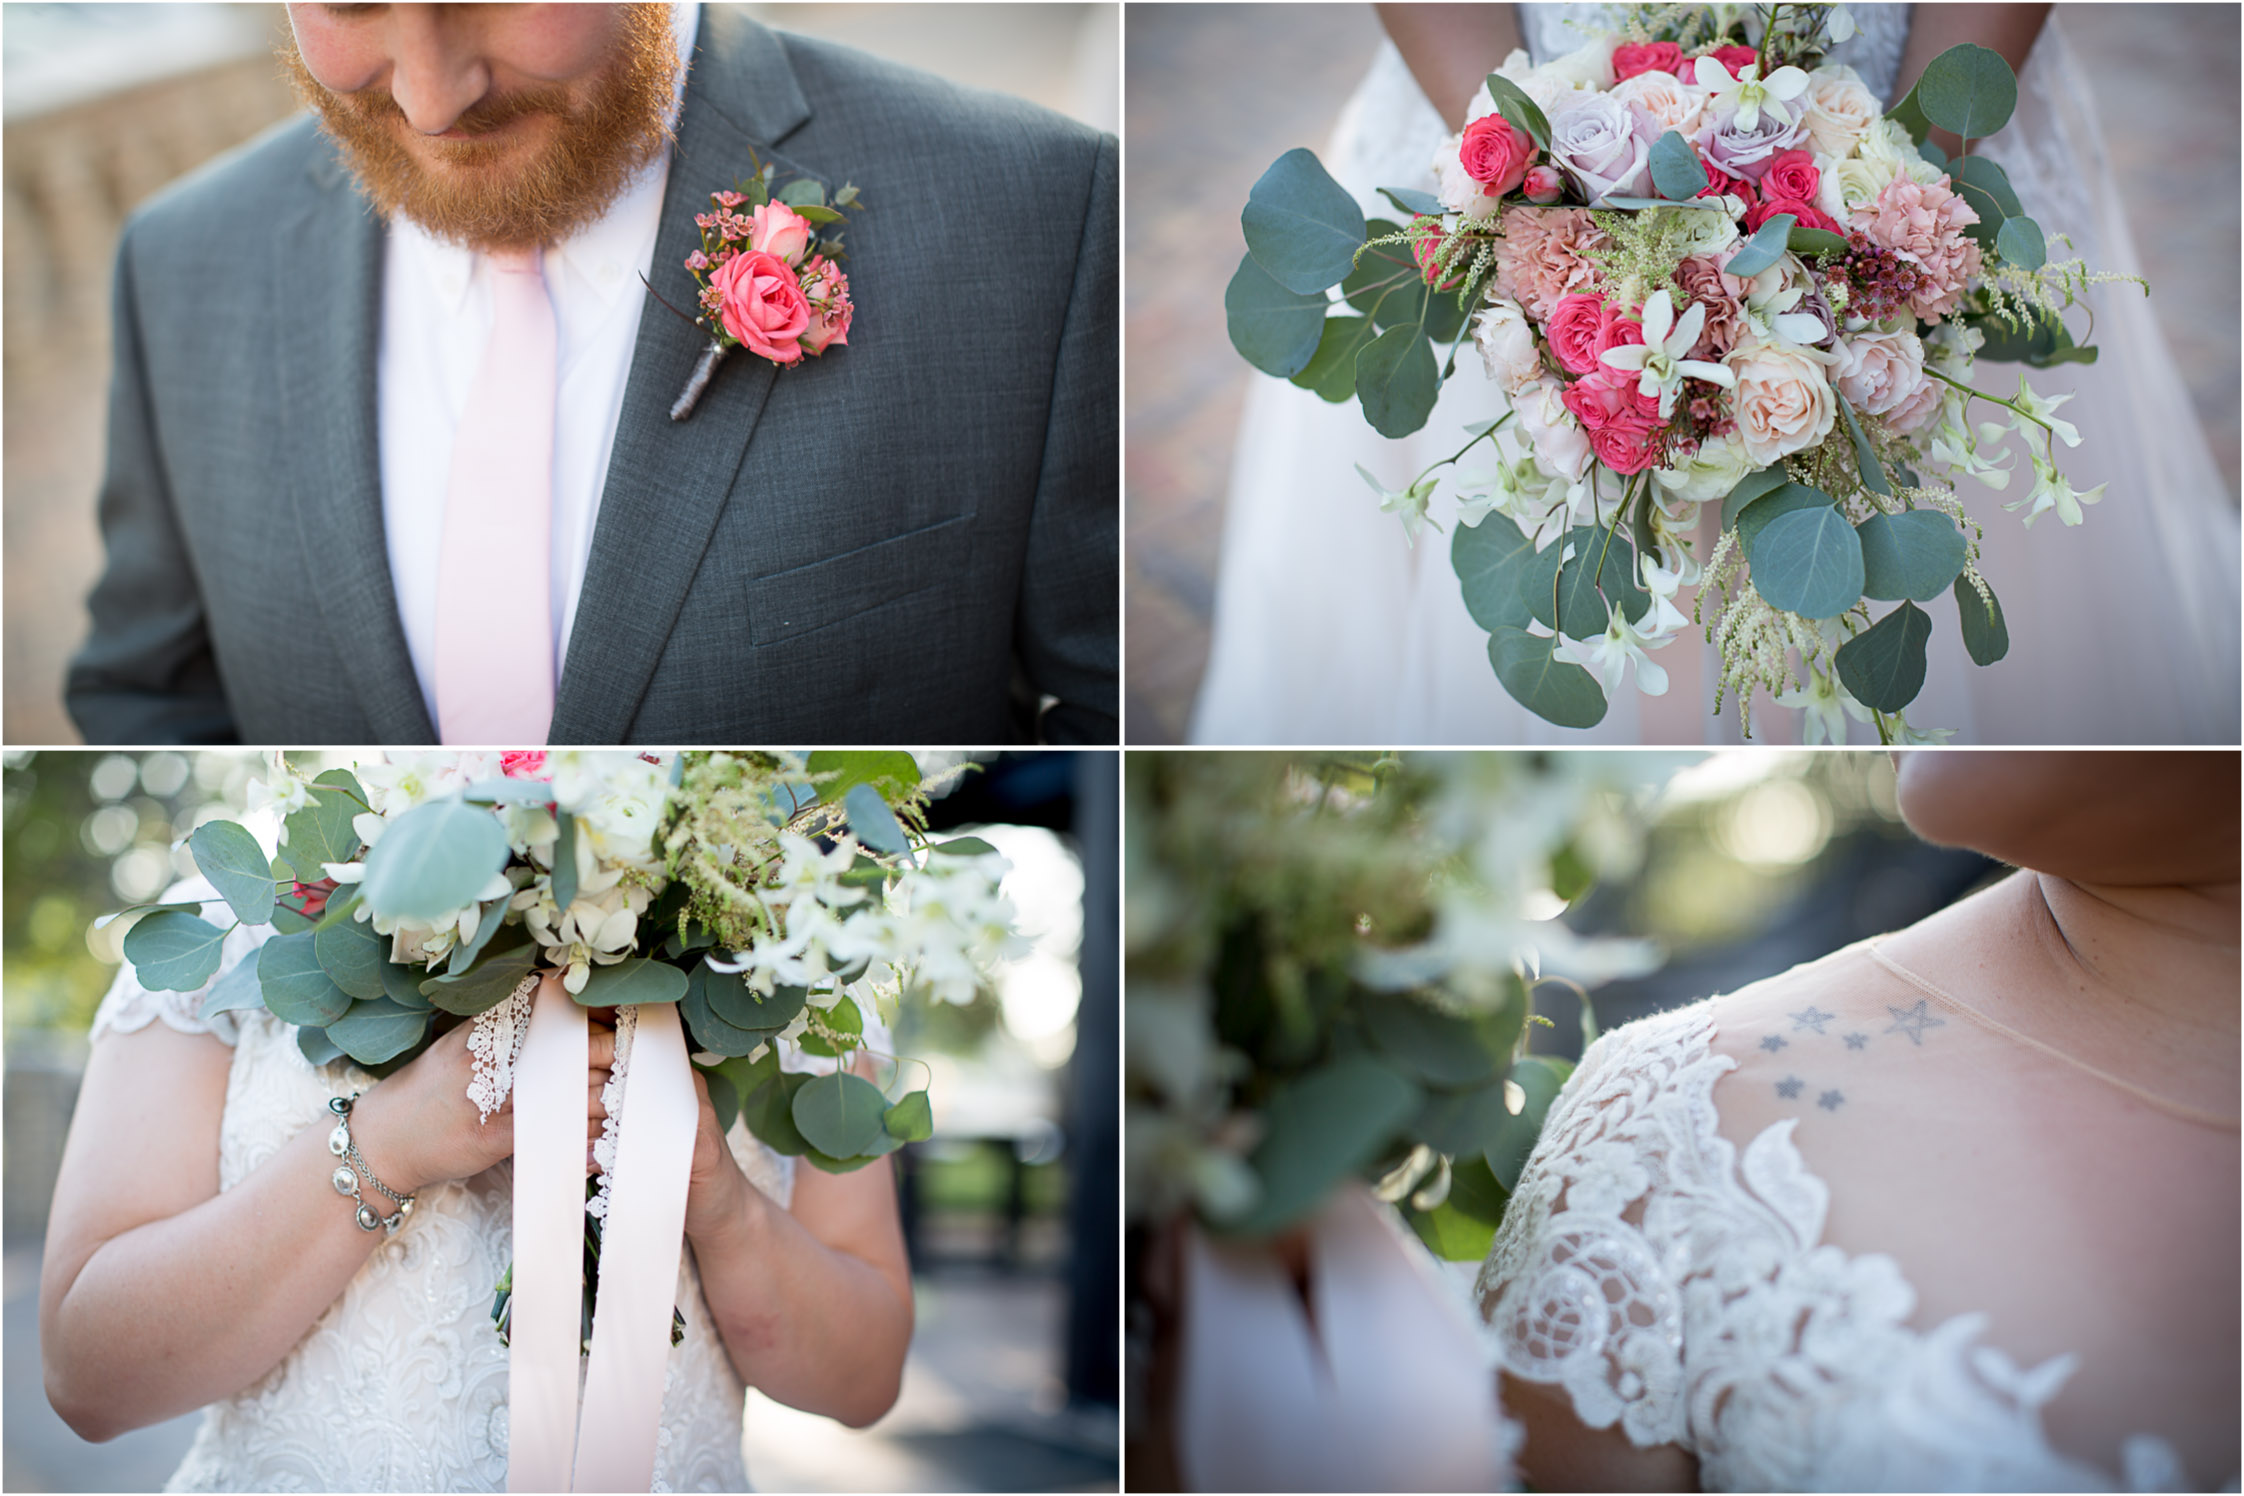 24-hotel-broz-new-prague-mn-minnesota-wedding-venue-photographer-styled-shoot-floral-details-boutineer-pink-rose-bout-bridal-bouquet-mahonen-photography.jpg